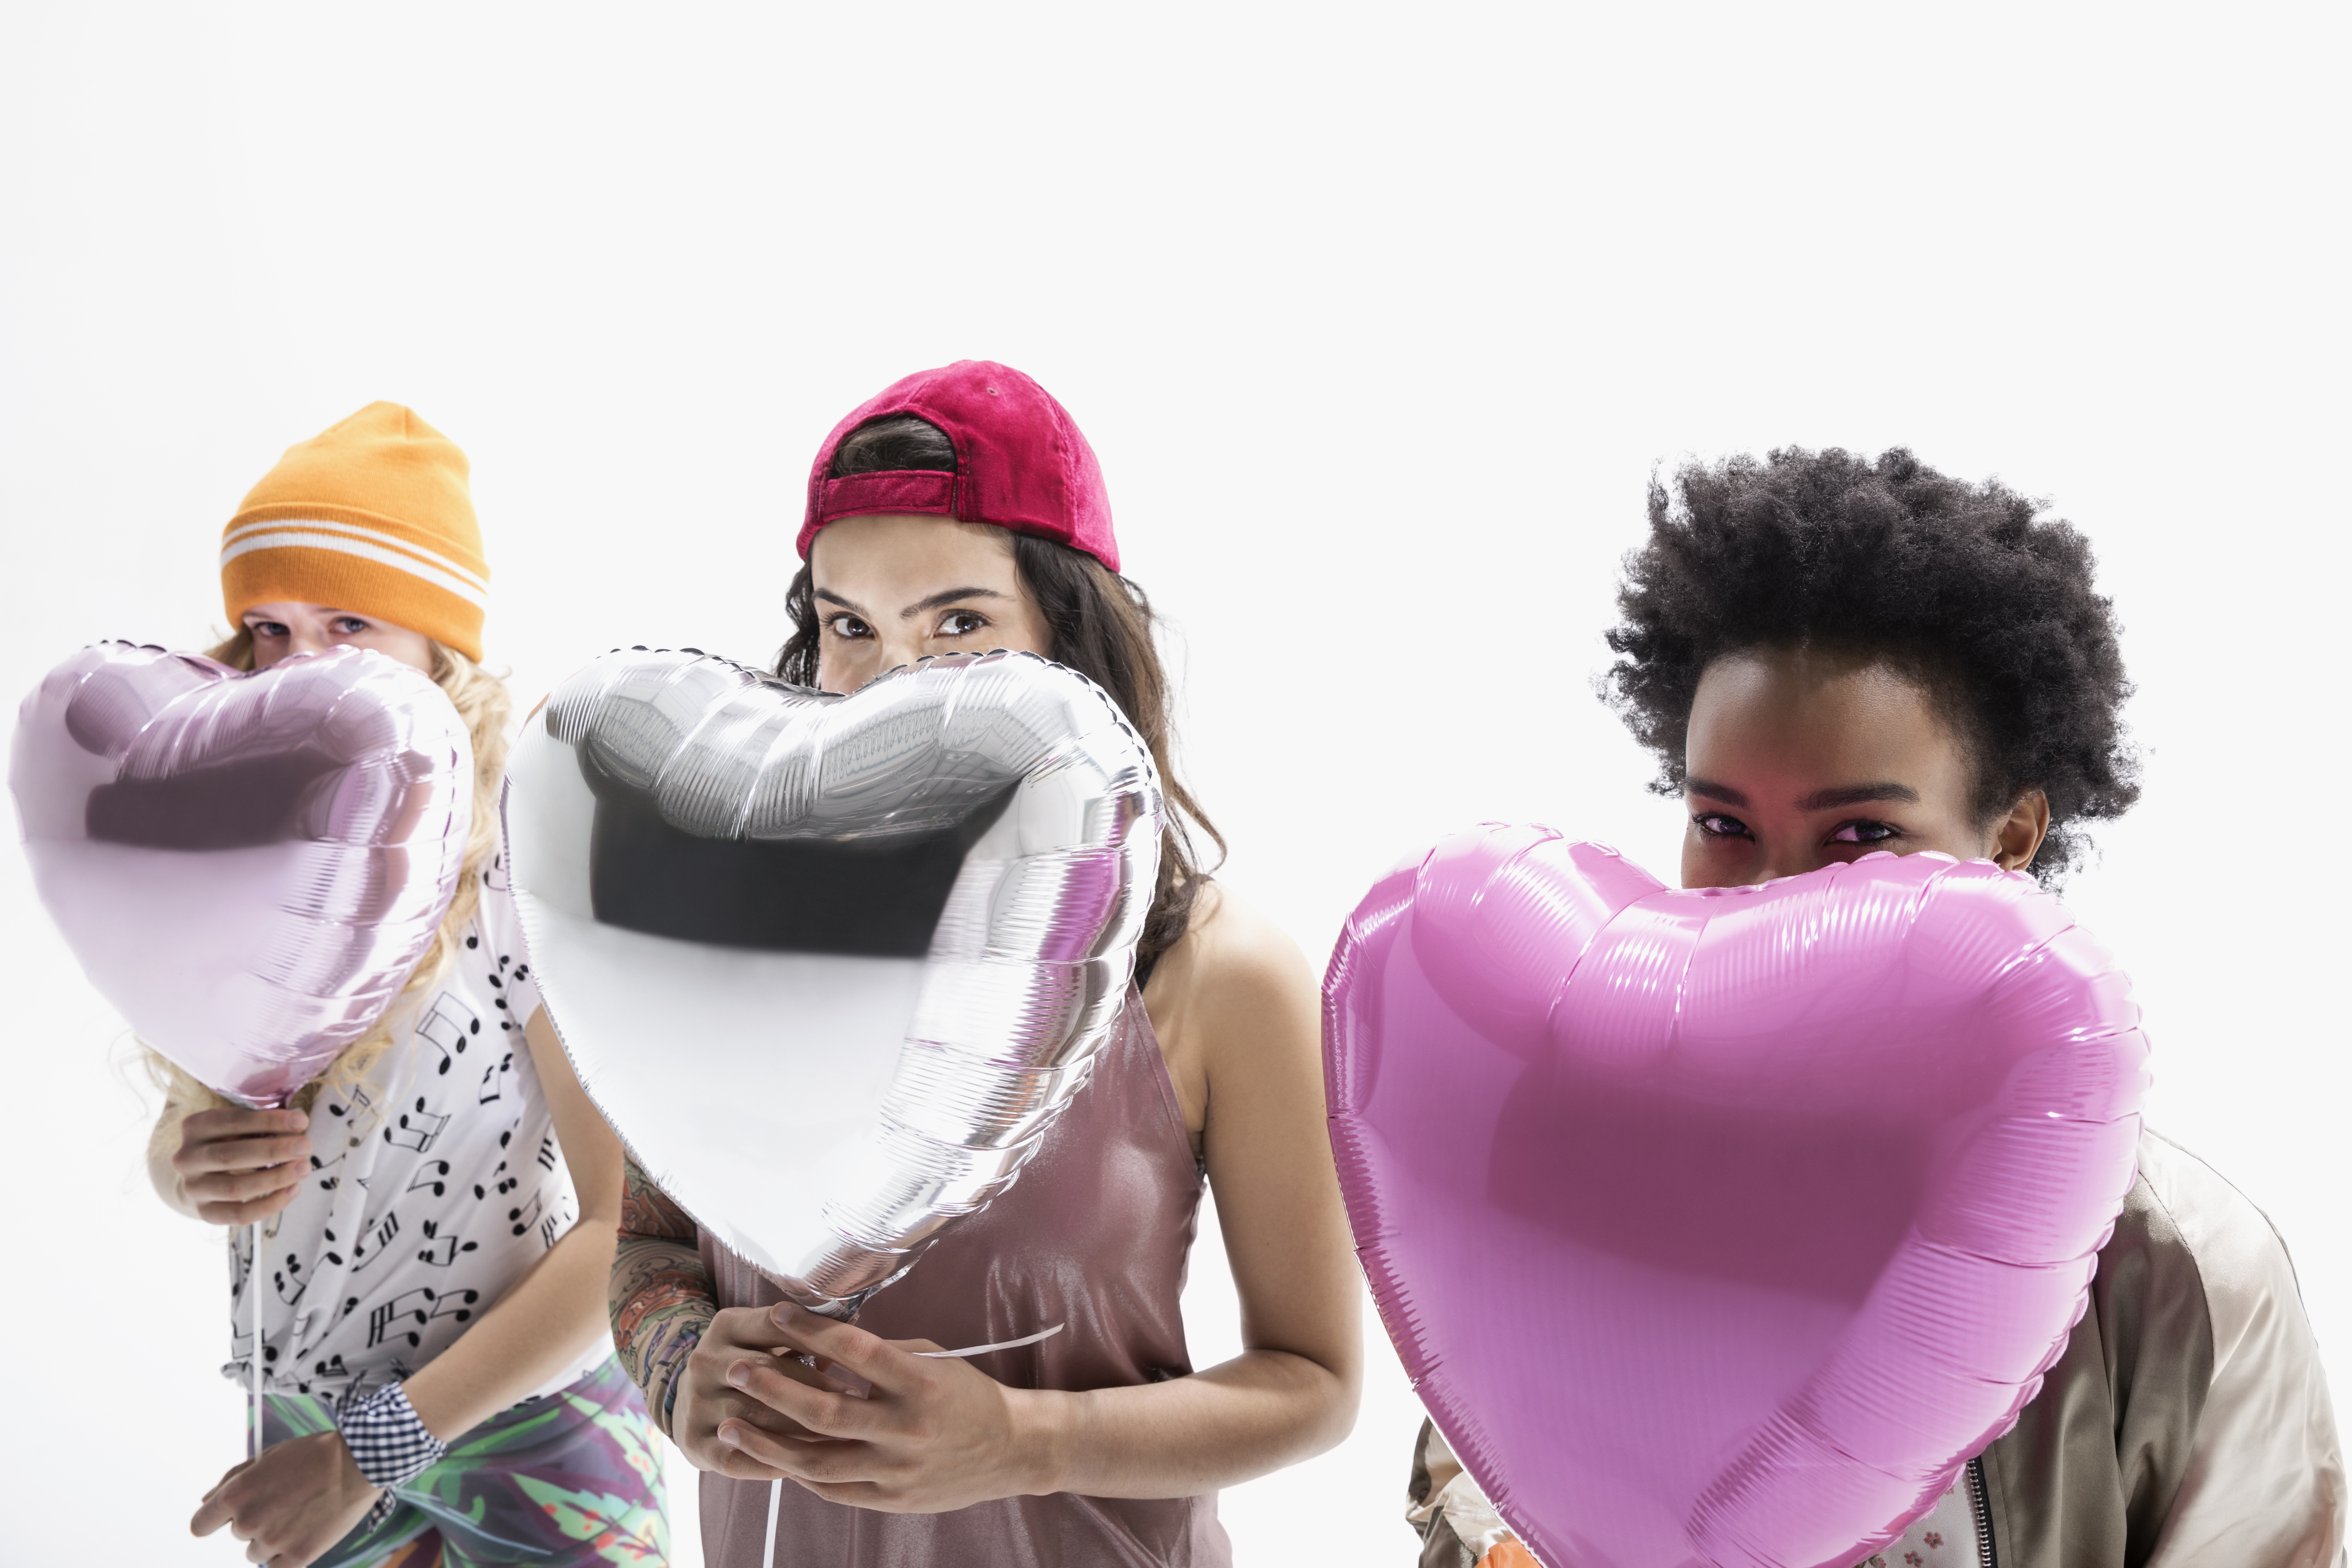 Portrait smiling women friends hiding behind heart-shape balloons against white background